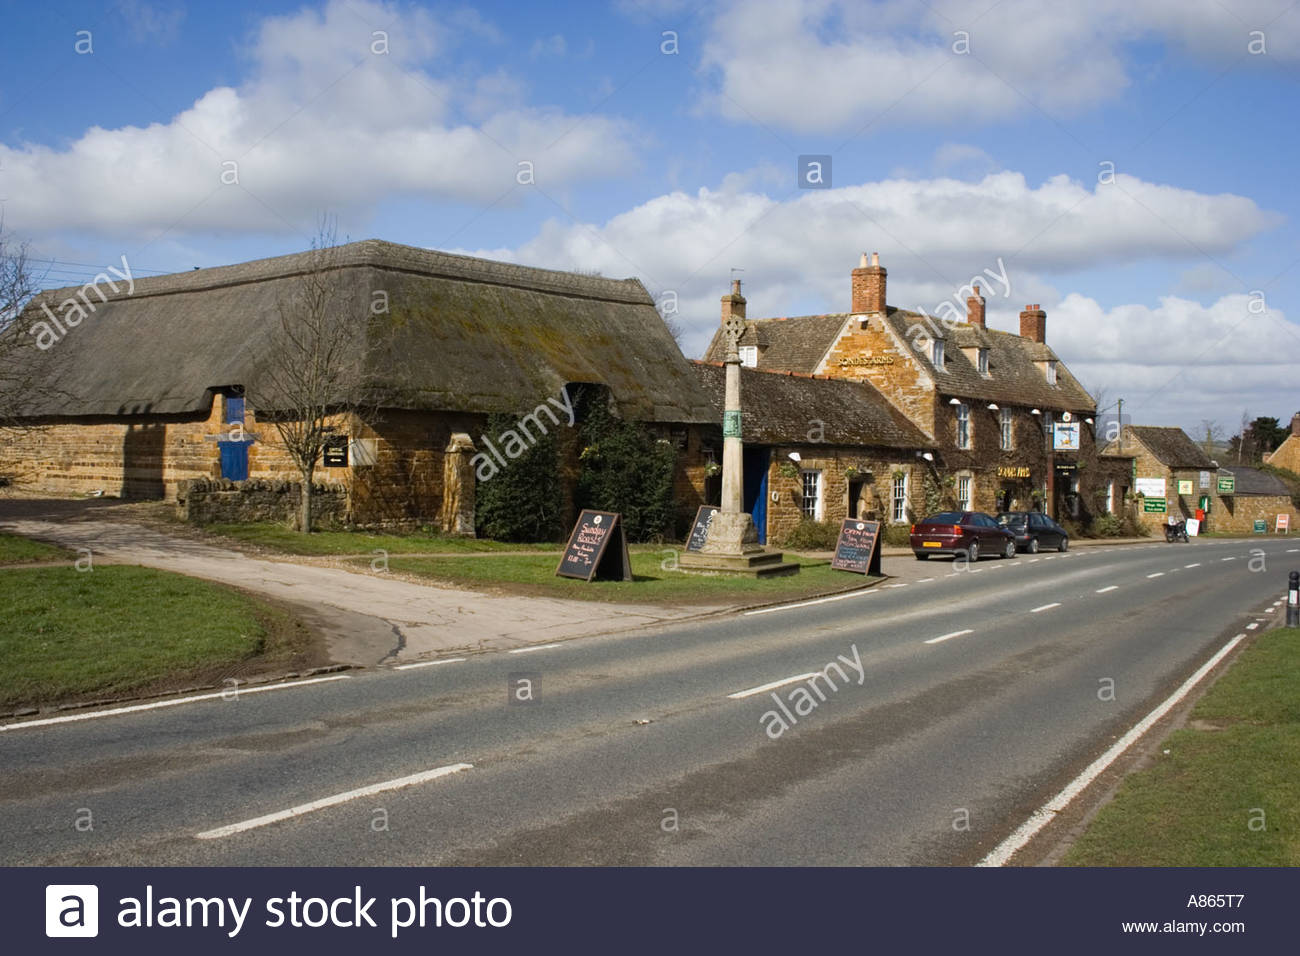 Rockingham, Village, Northamptoshire,Public House, - Stock Image